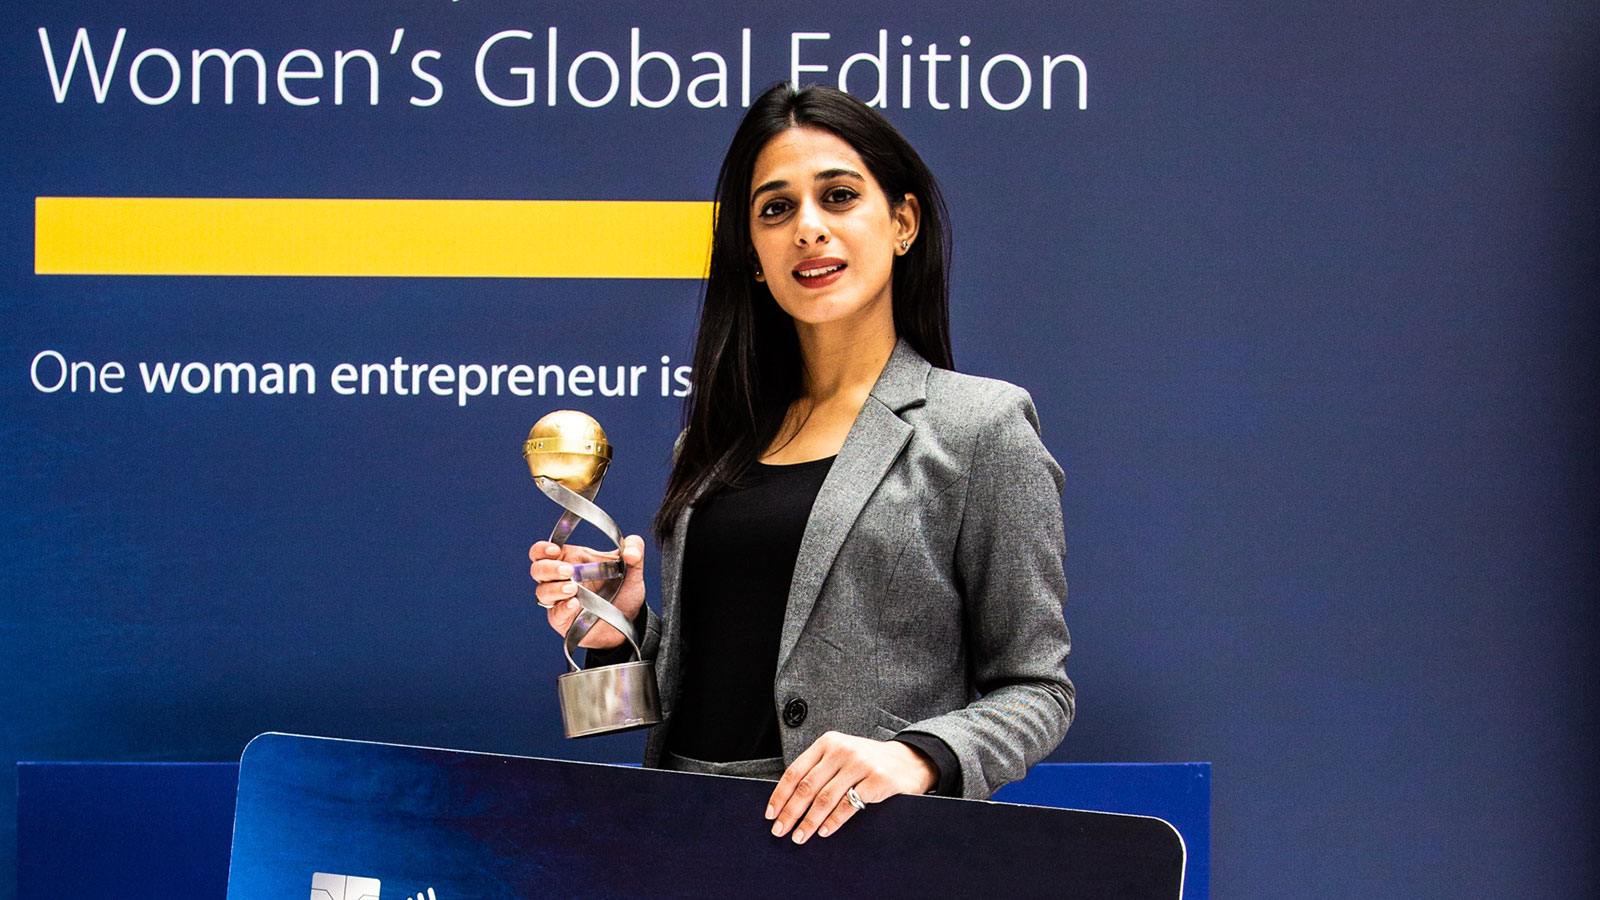 Naureen Hyat, winner of the Fintech challenge, posing with a trophy.